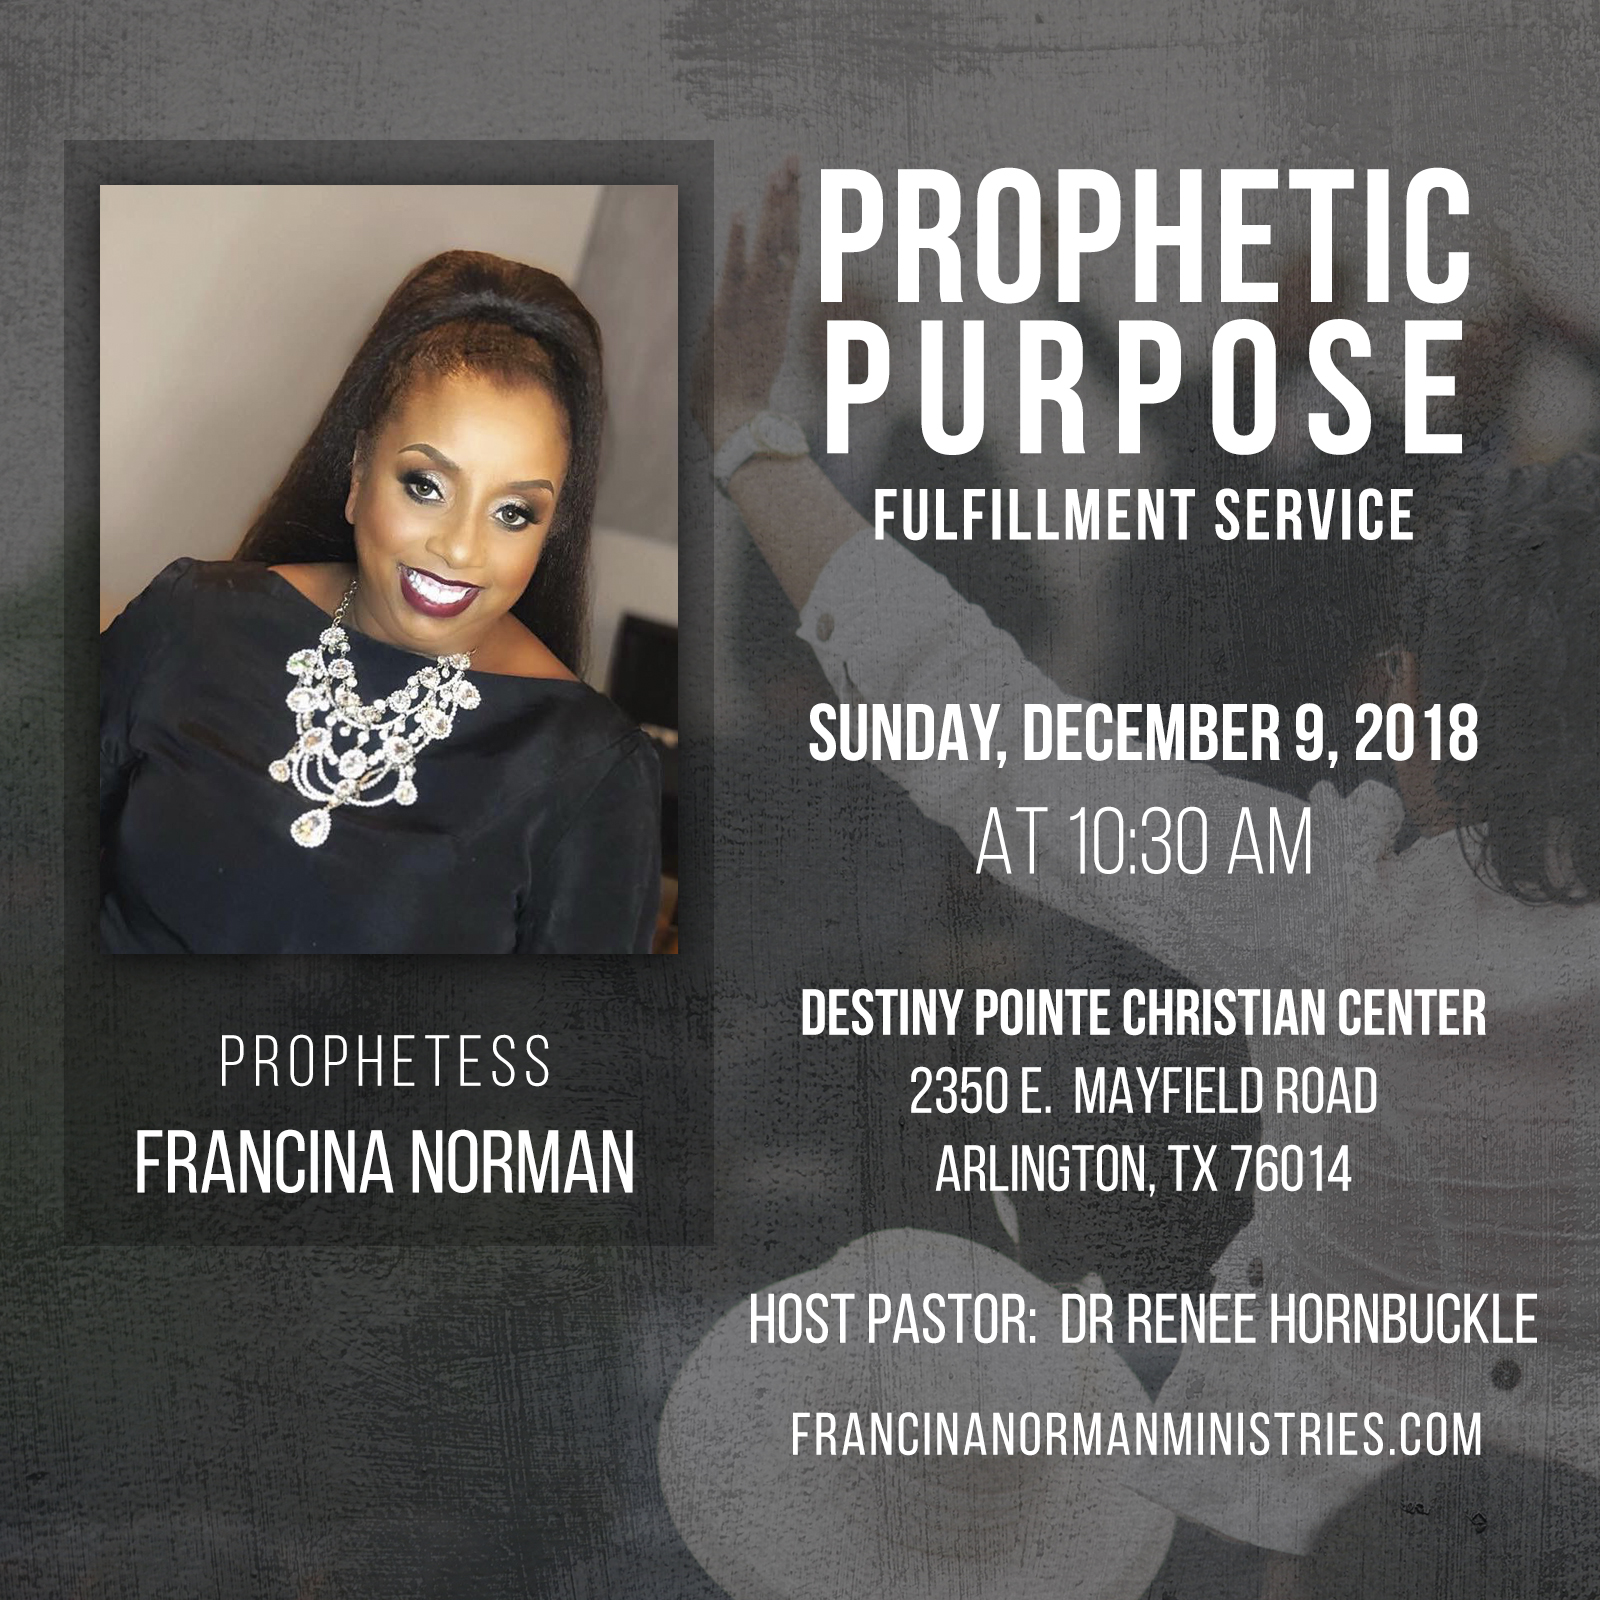 Welcome to Francina Norman Ministries